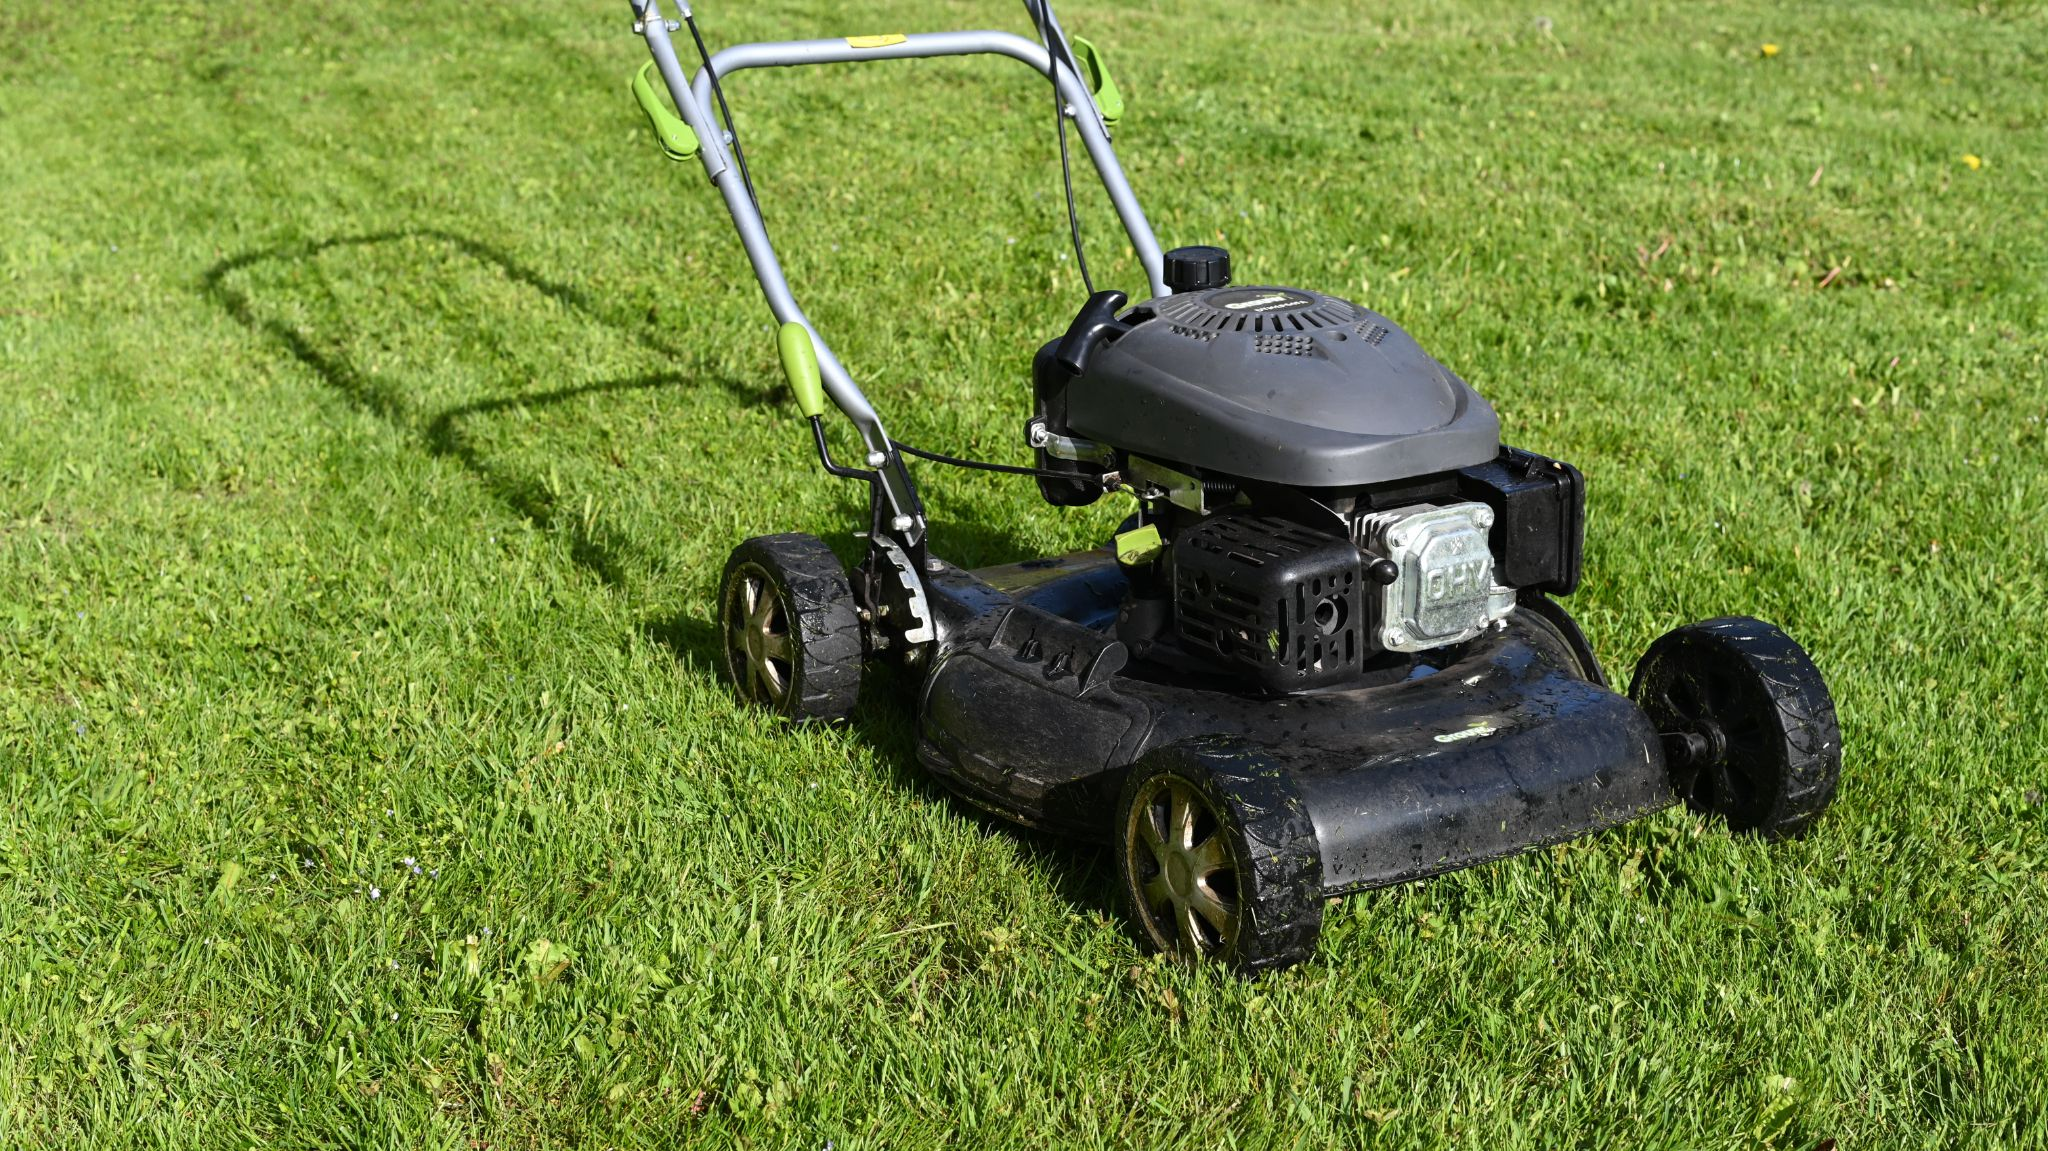 When is a Good Time to Buy a Lawn Mower?